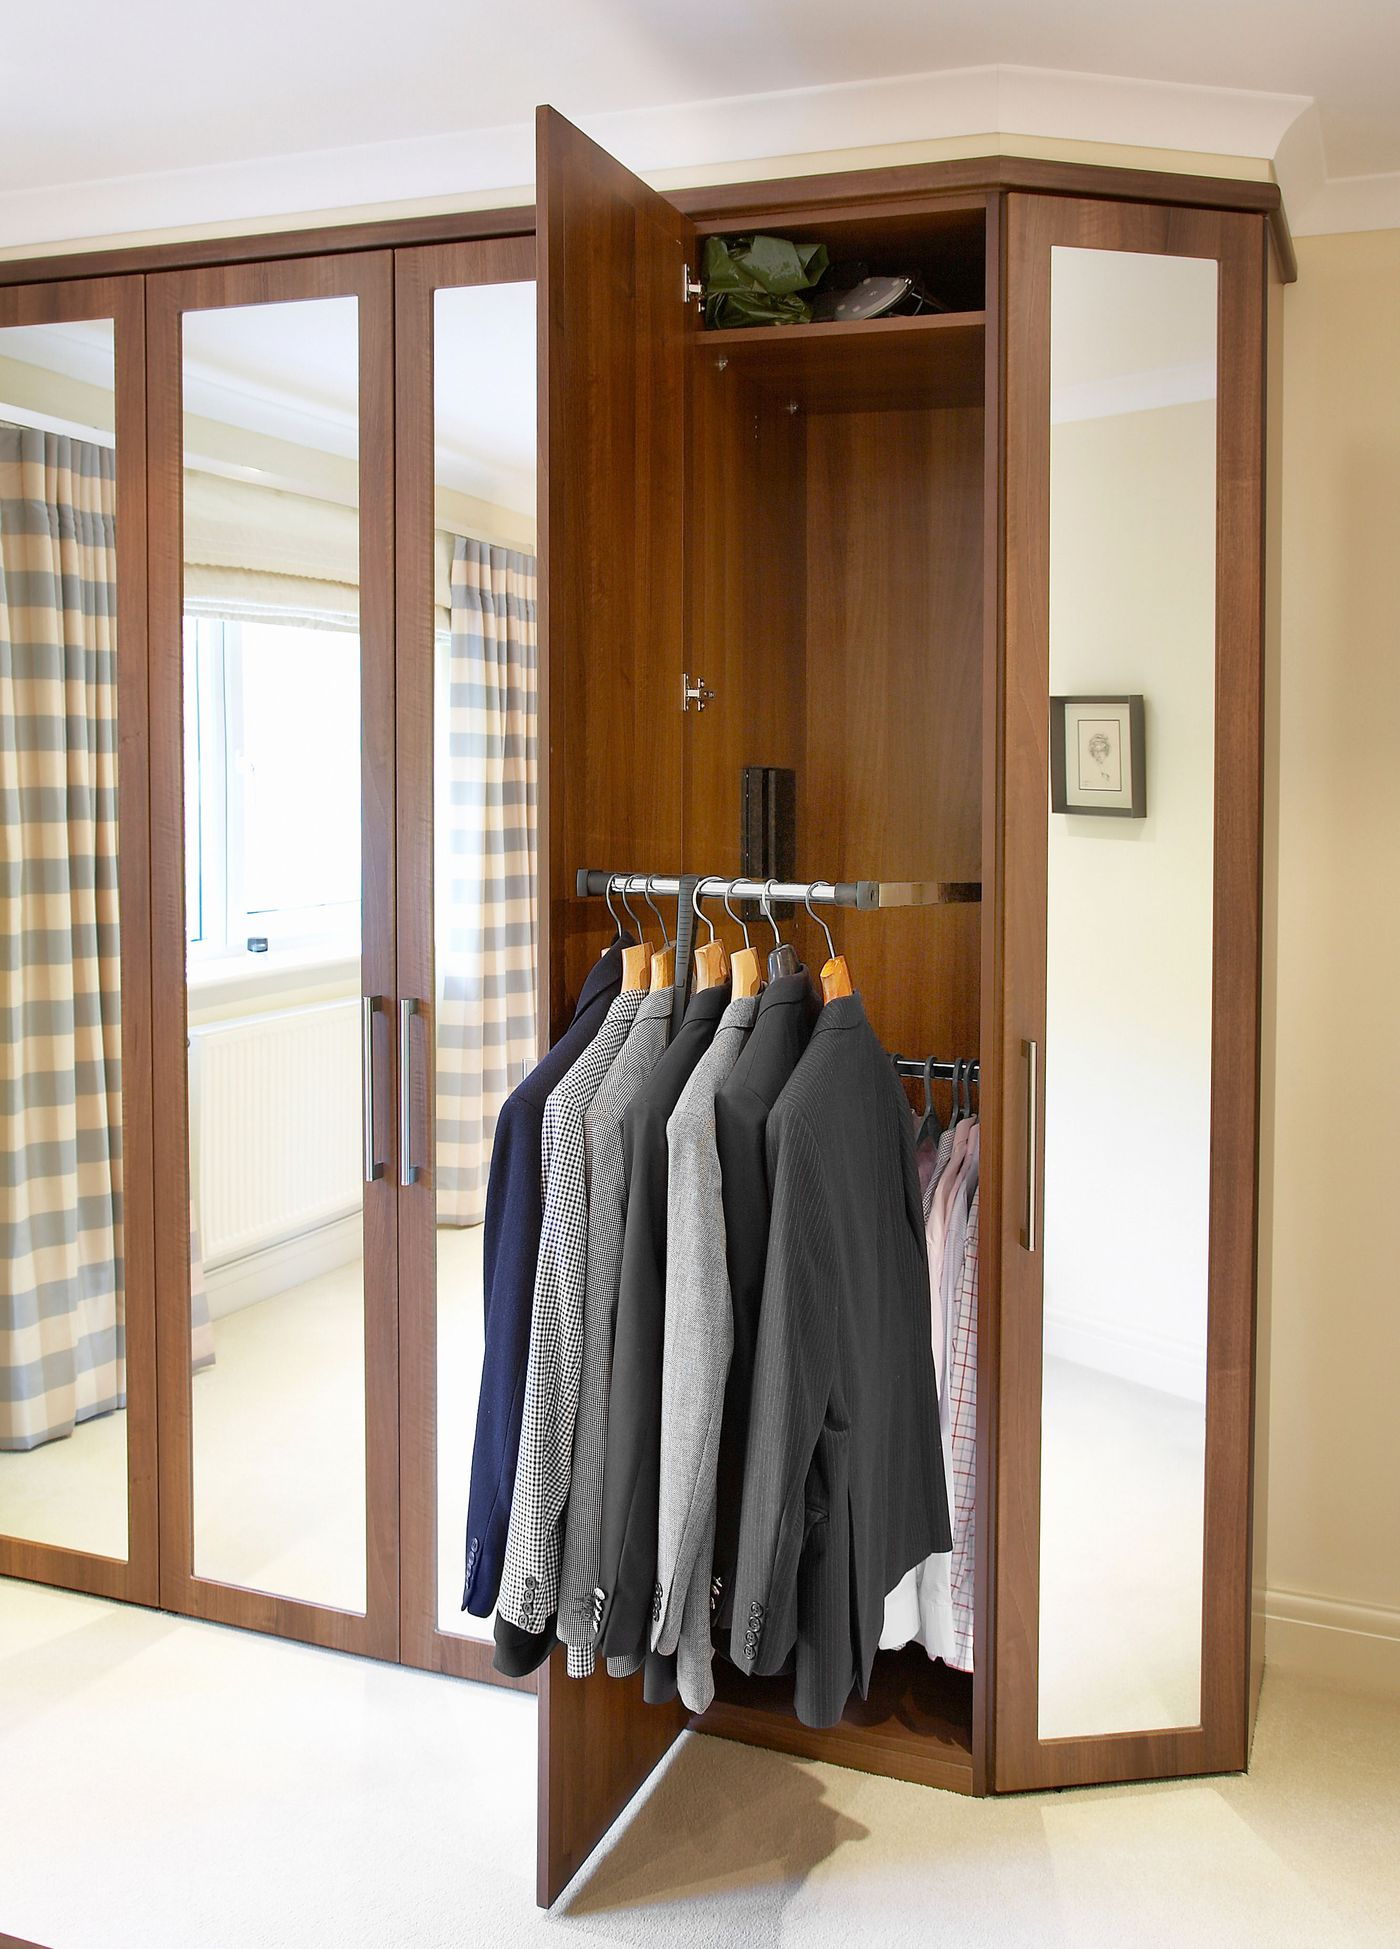 Bedroom Closet Remodel Planning Guide Redesign Tips Ideas This Old House